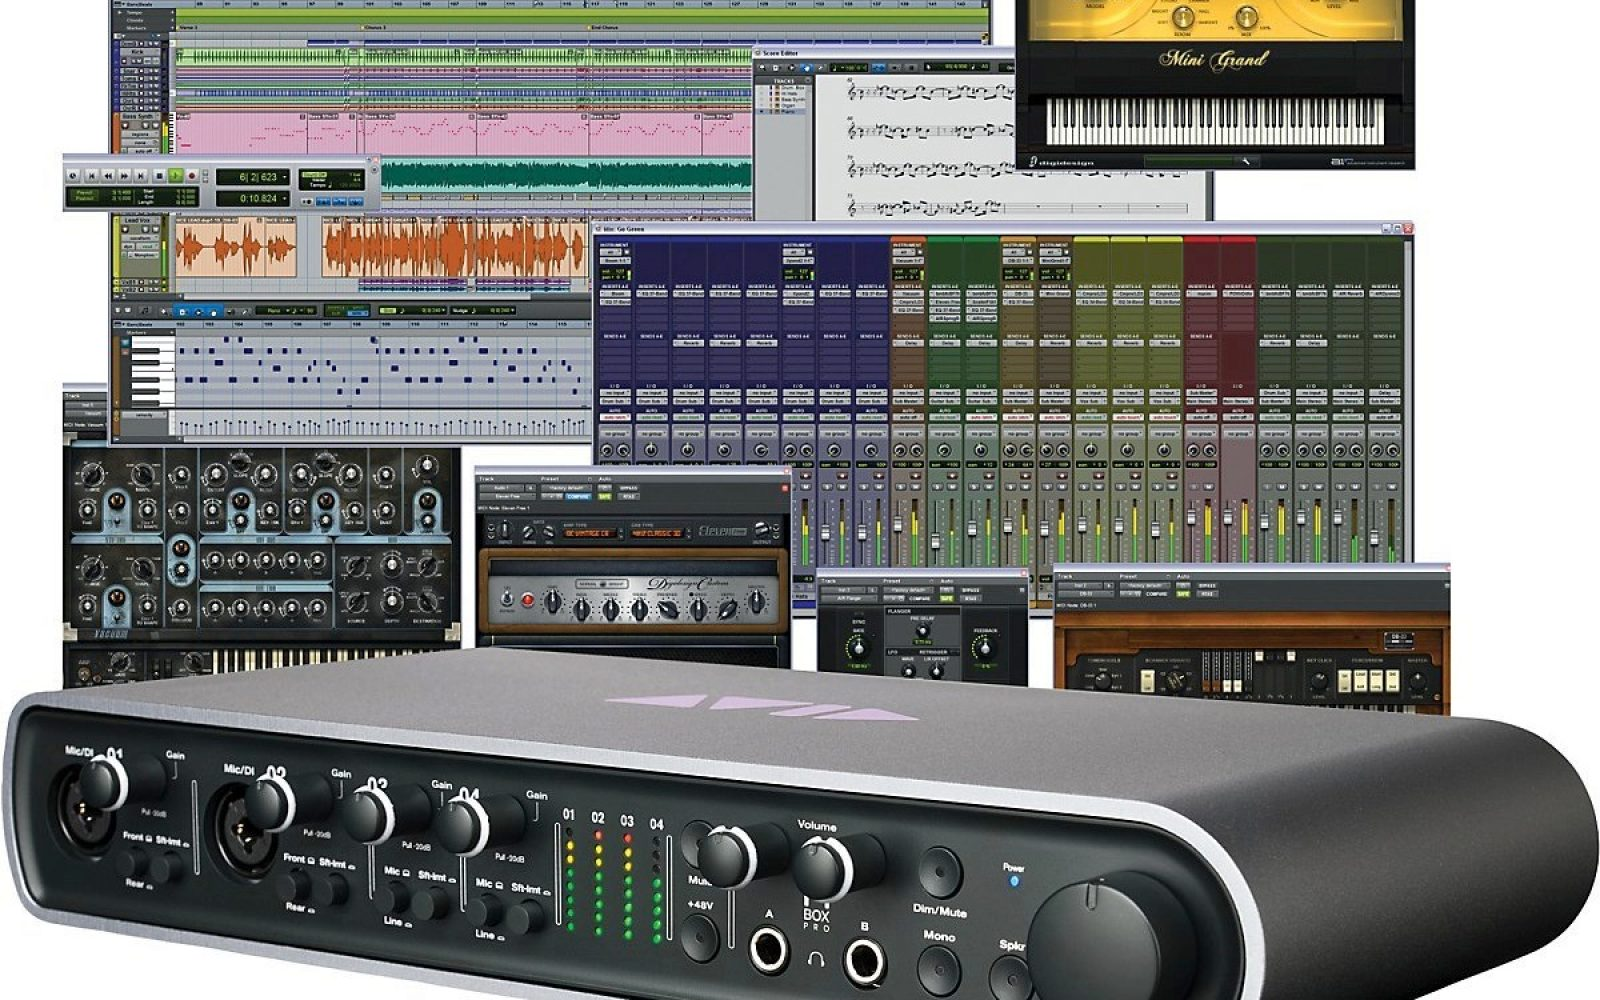 pro tools 11 mbox pro interface 760 shipped 240 off pro tools krk recording suite package. Black Bedroom Furniture Sets. Home Design Ideas